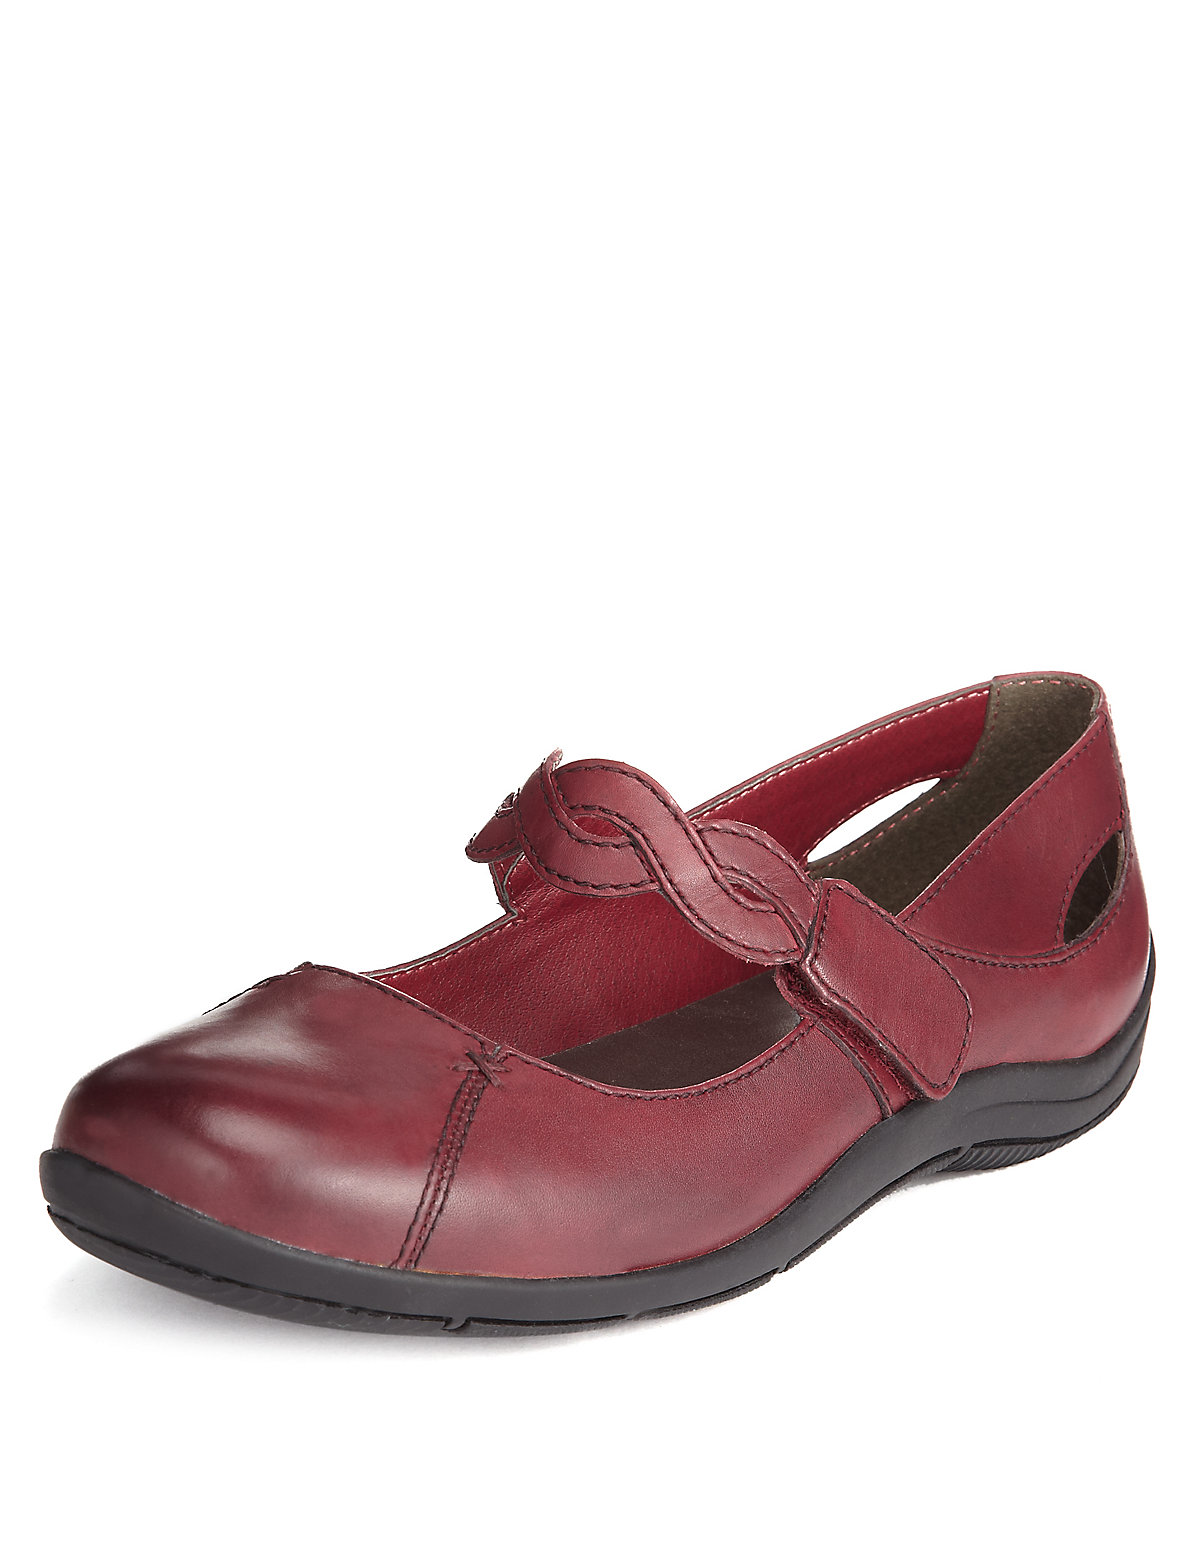 Wide fit shoes Beautiful shoes in a big choice of fittings. Designed for comfort and style, our shoes and boots available in different width fittings provide extra width across the foot.